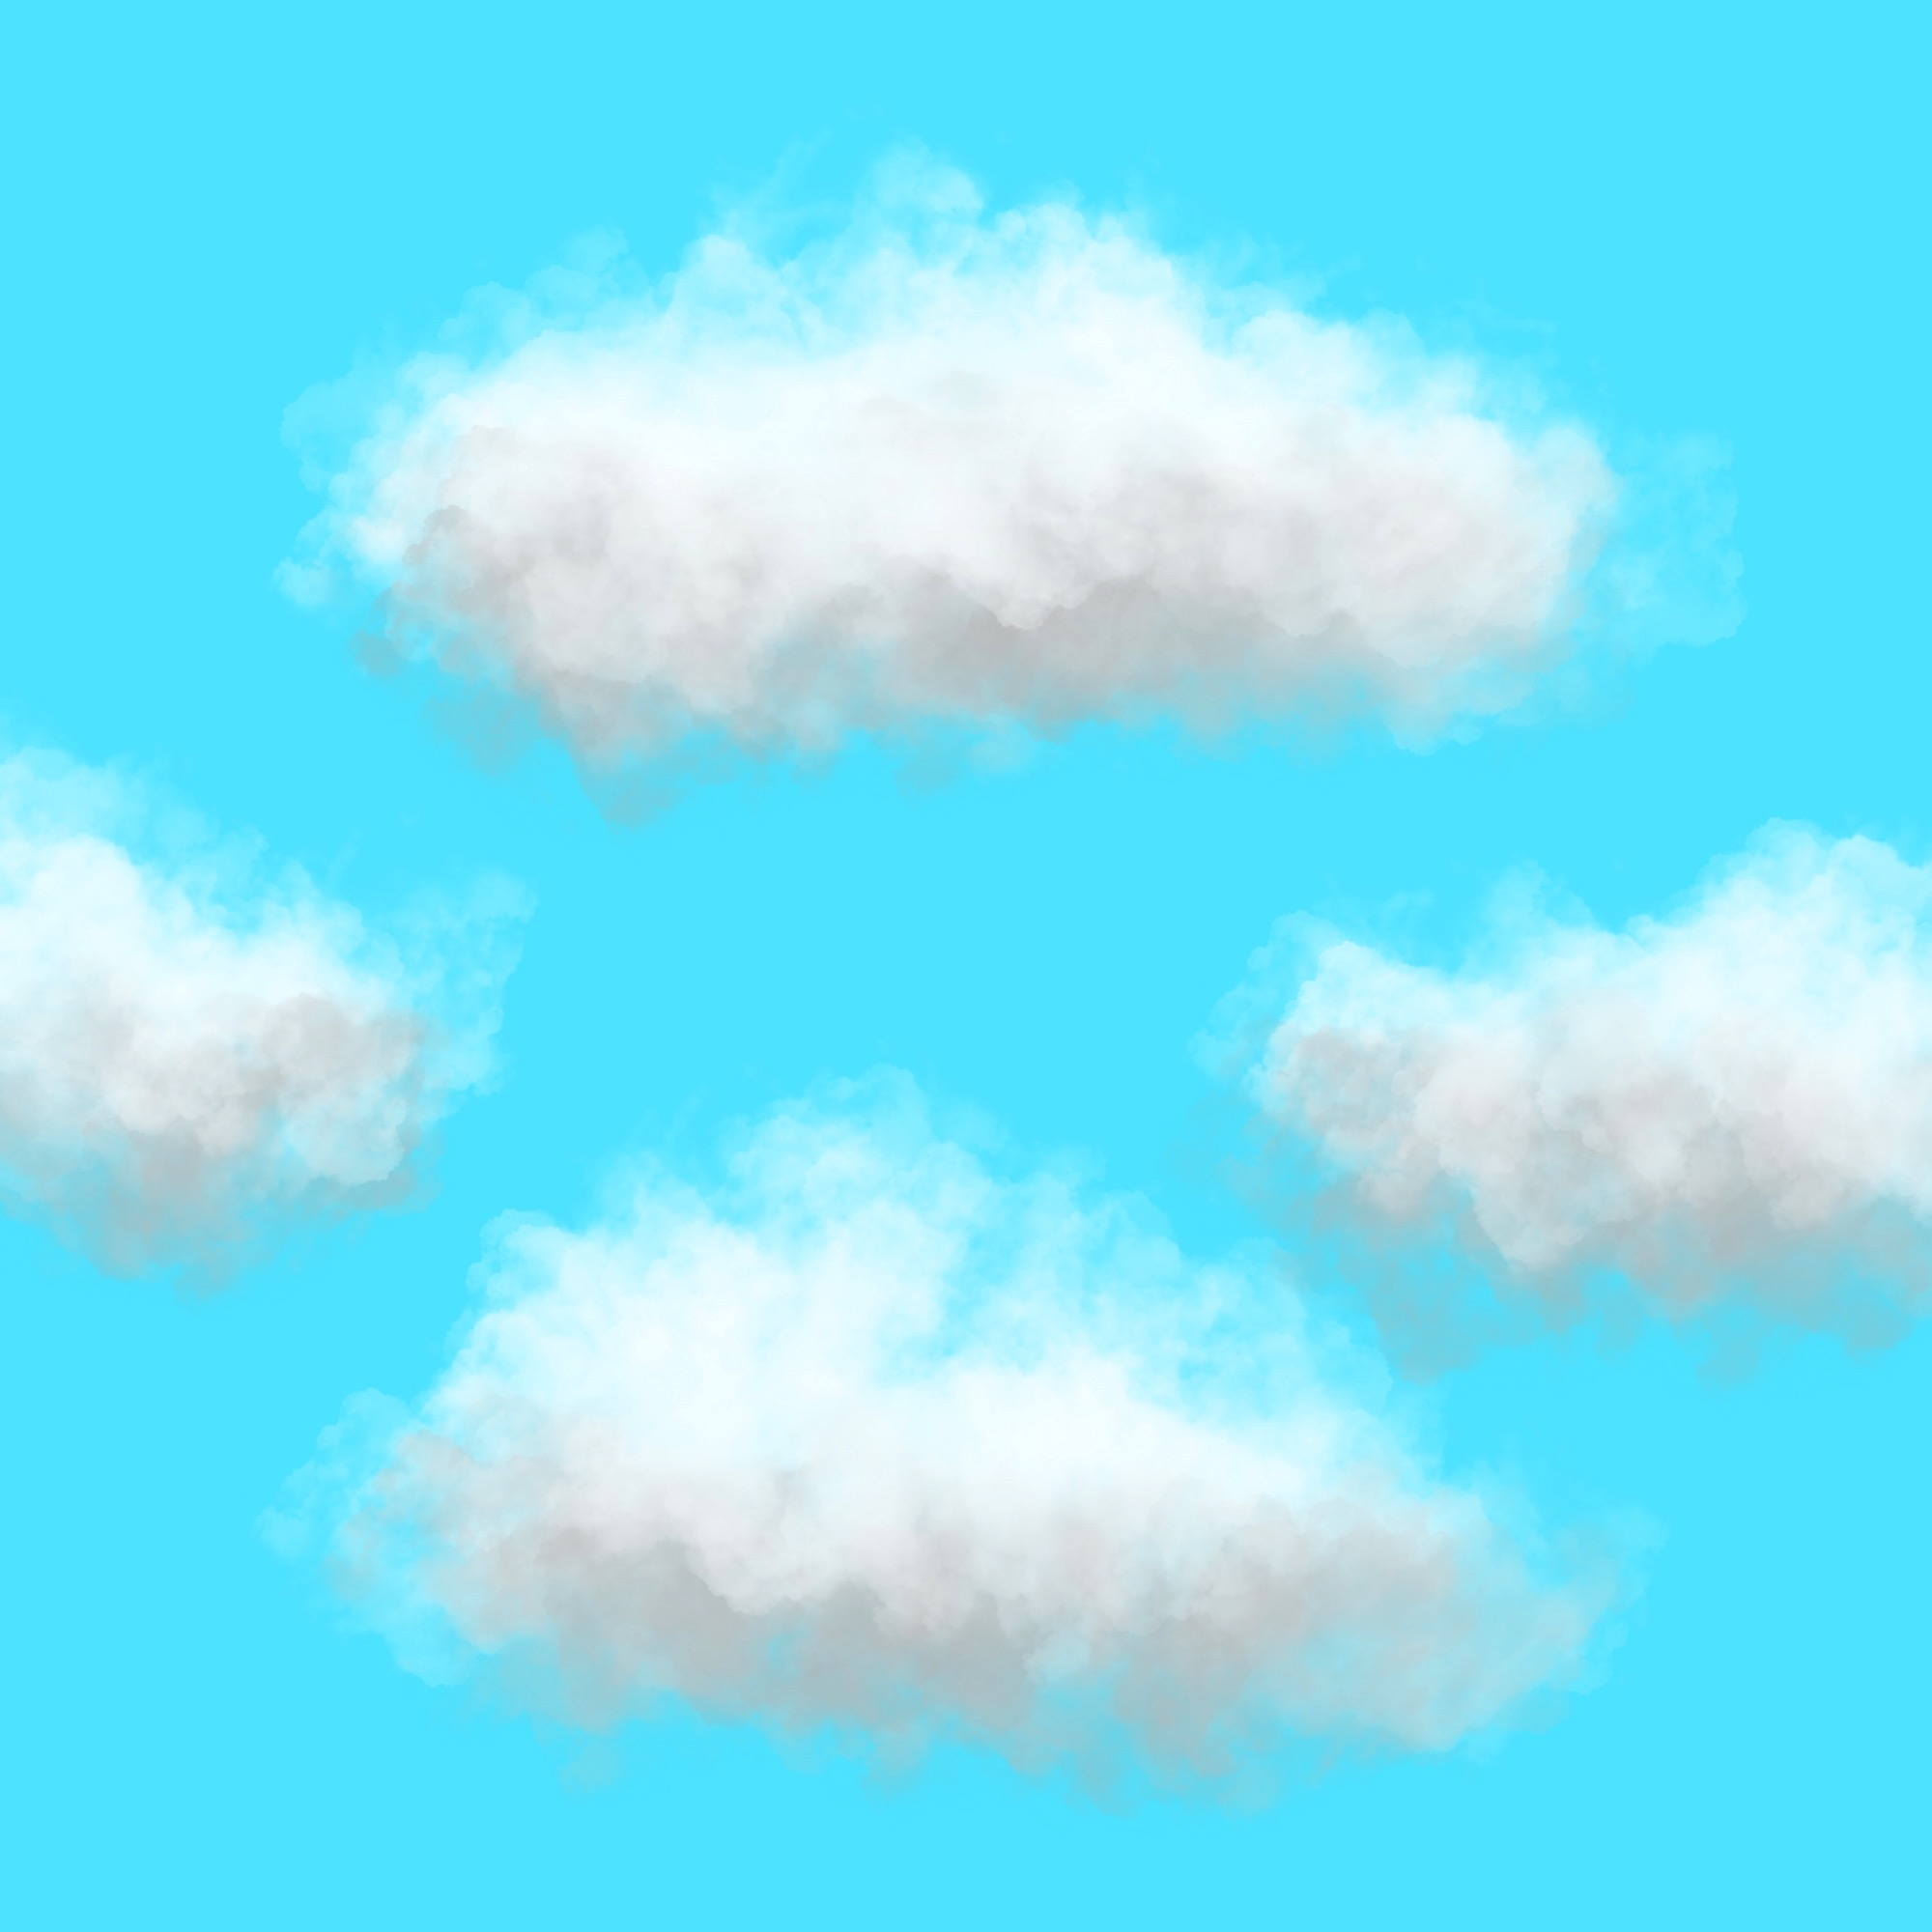 Some Clouds by Lisa Bardot